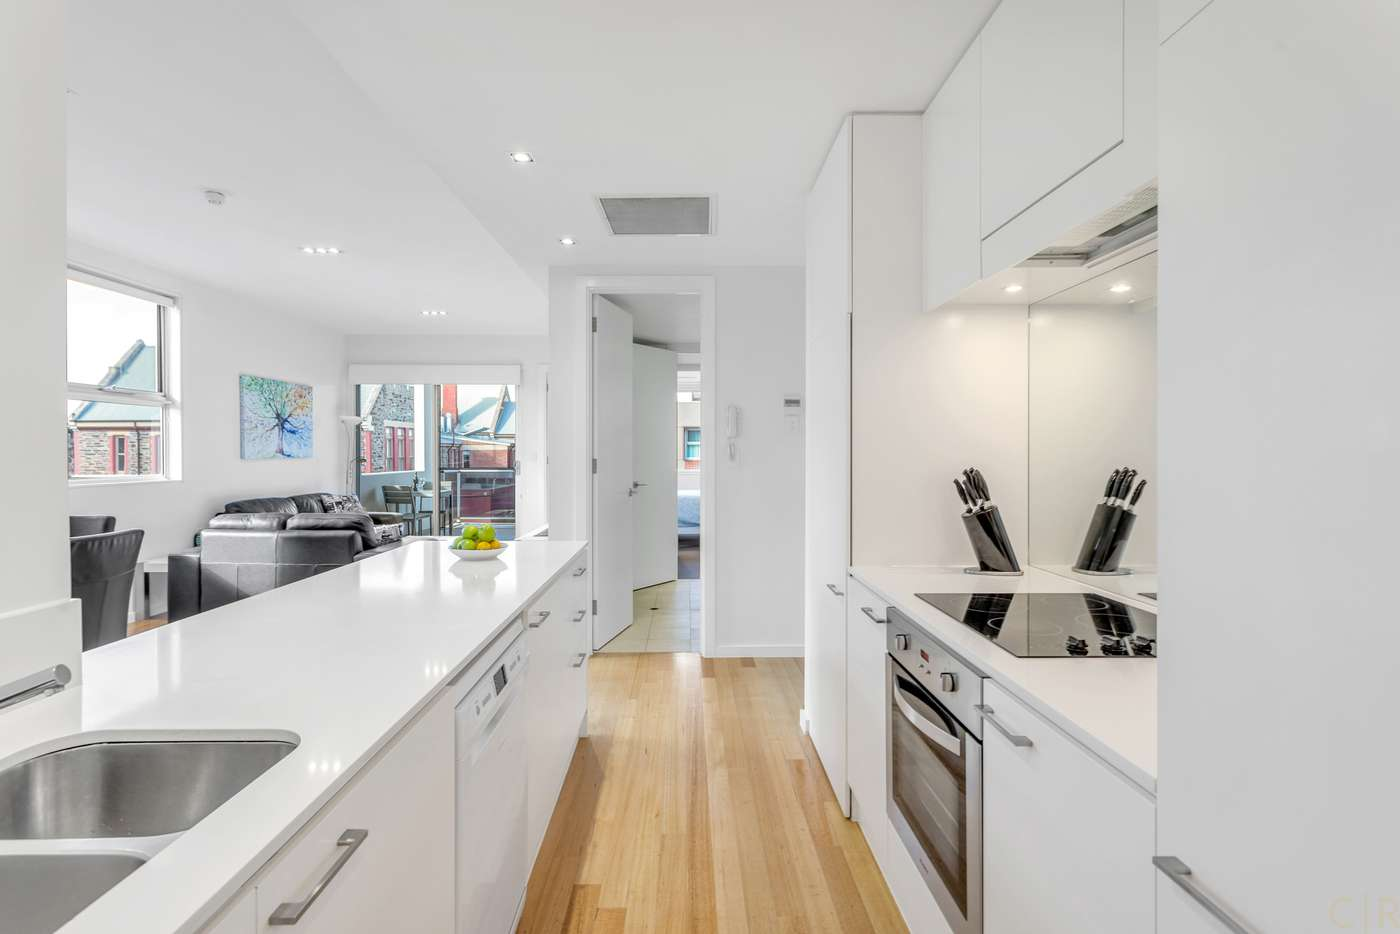 Main view of Homely apartment listing, 8/11 Daly Street, Adelaide SA 5000